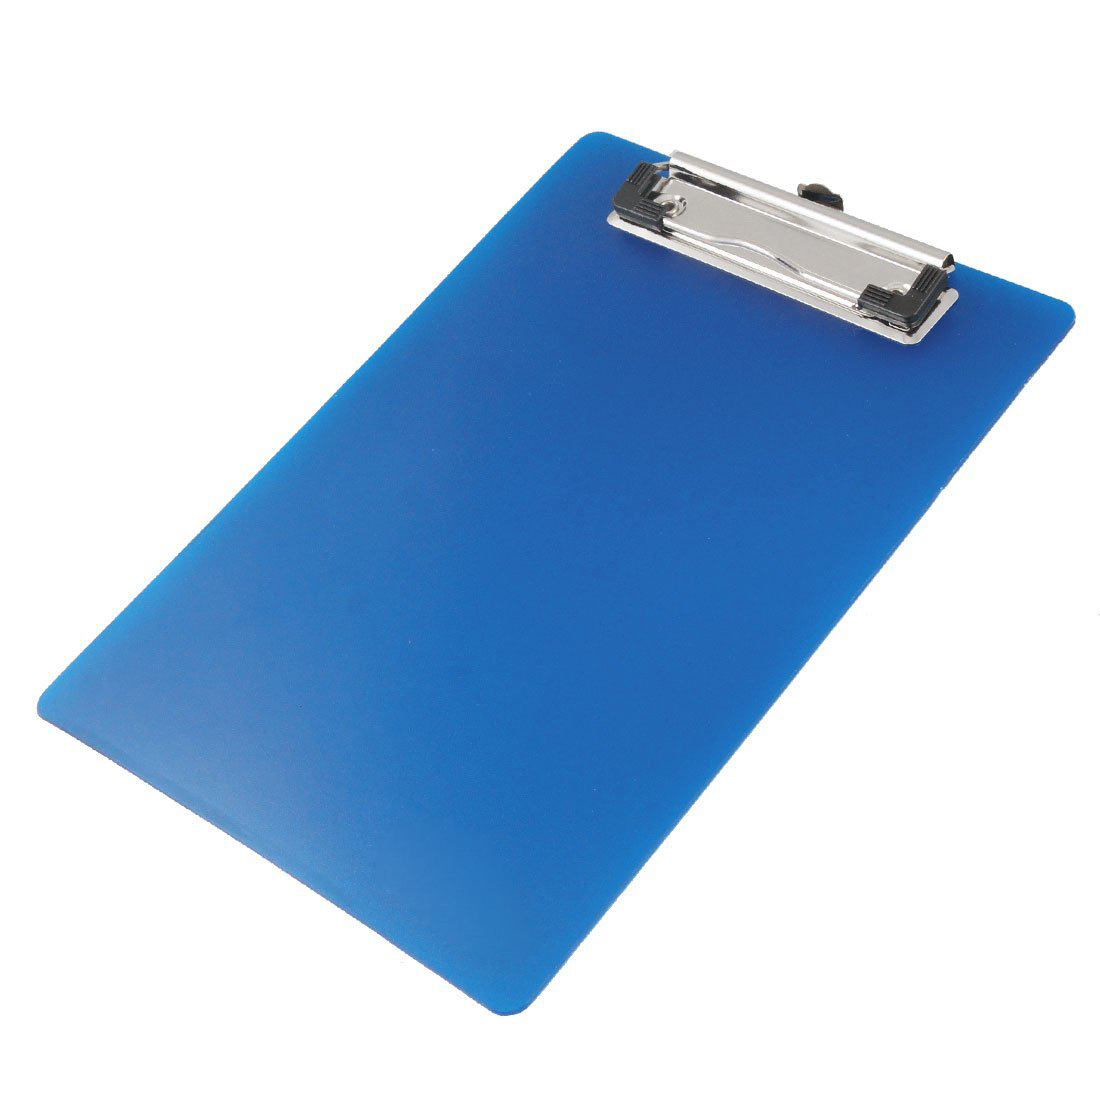 SOSW-Office A5 Paper Holding File Clamp Clip Board Blue